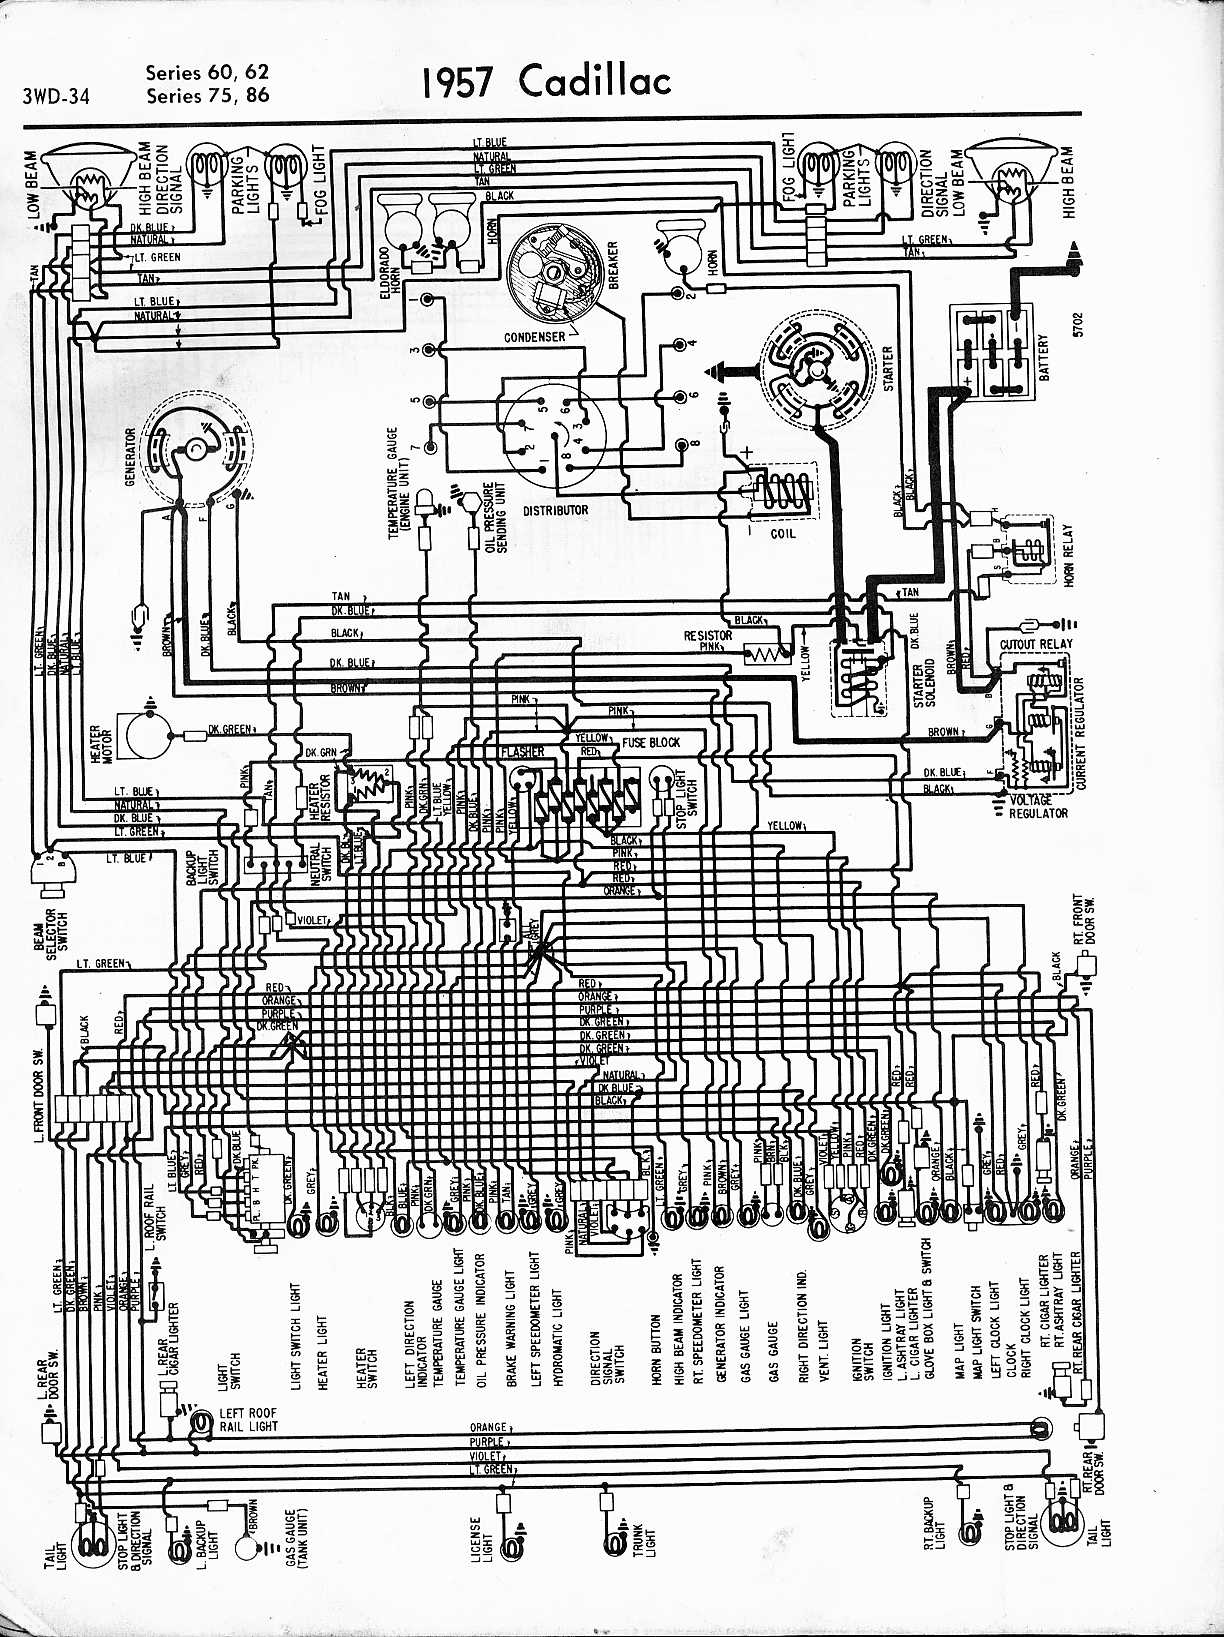 MWireCadi65_3WD 034 1968 cadillac wiring diagram best wiring library